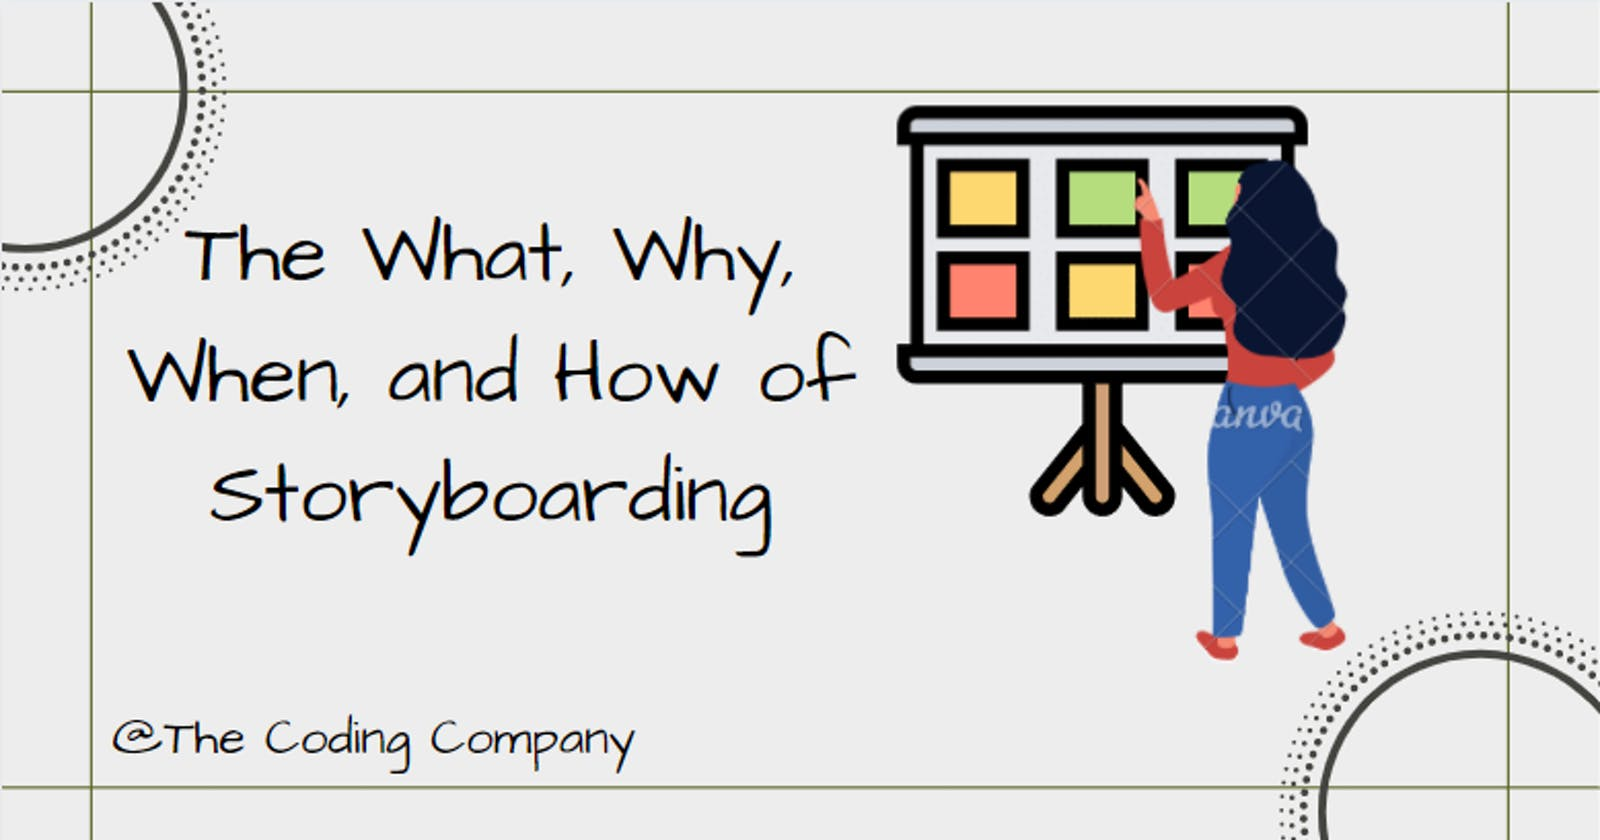 The What, Why, When, and How of Storyboarding